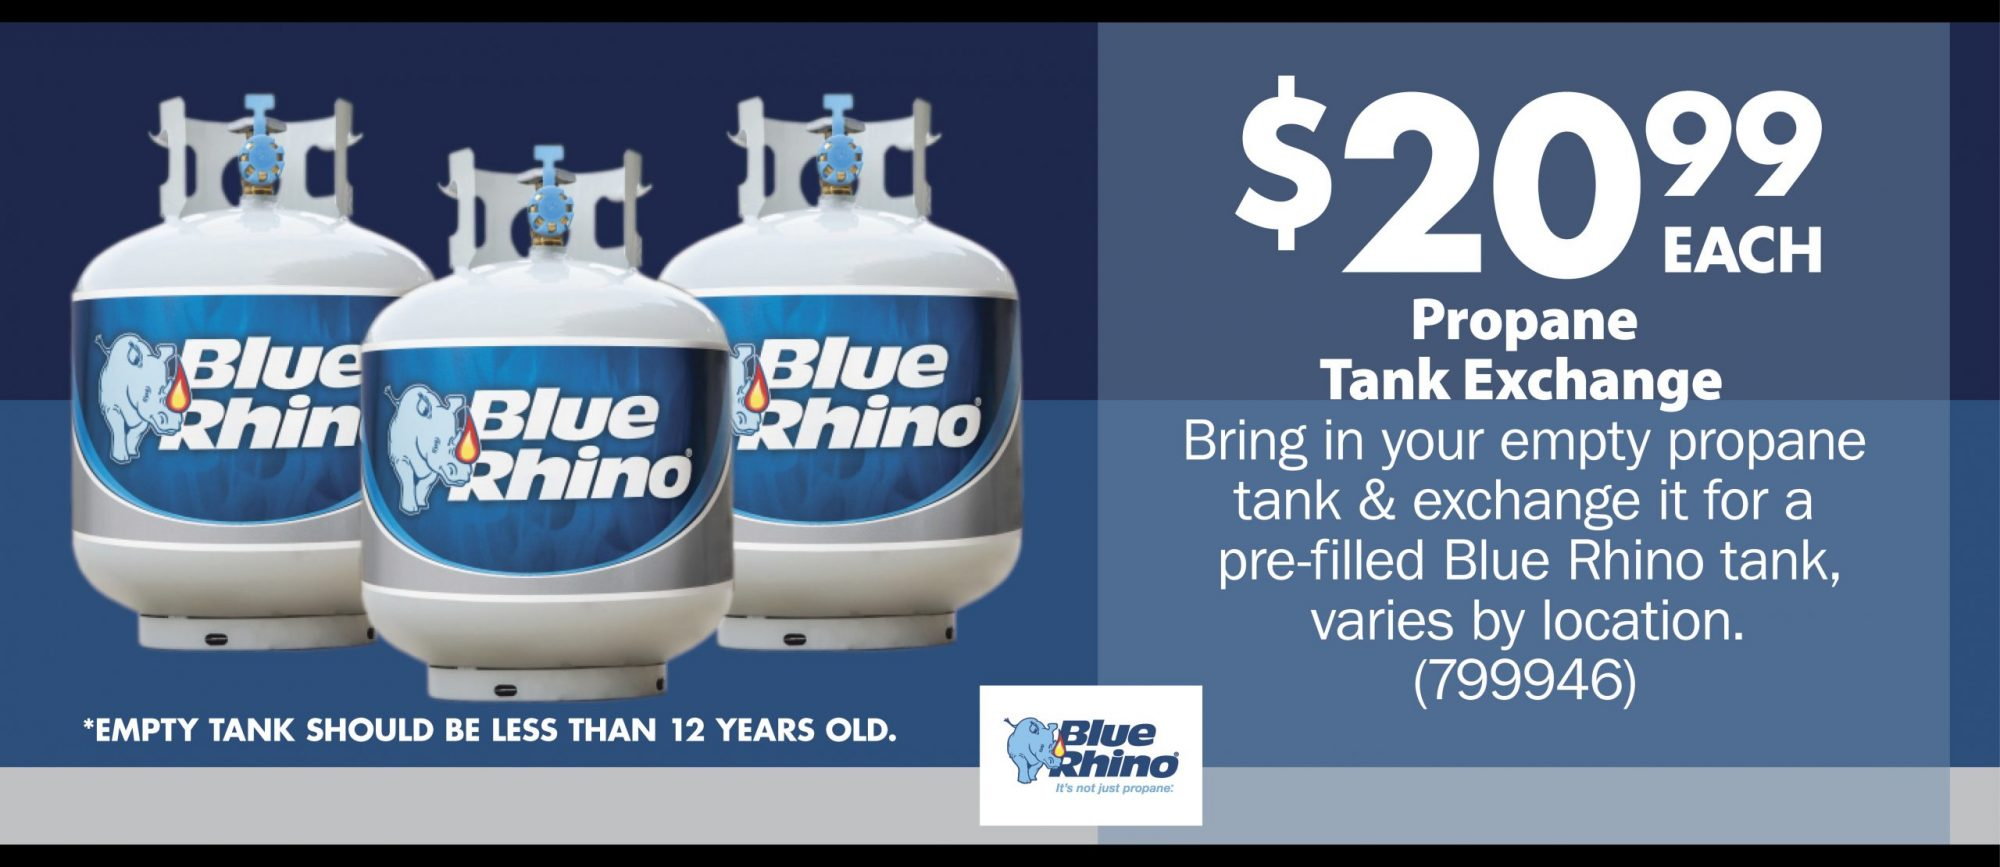 $20.99 each.  Propane Tank Exchange  Bring in your empty propane  tank & exchange it for a  pre-filled Blue Rhino® tank,  varies by location. (799946)